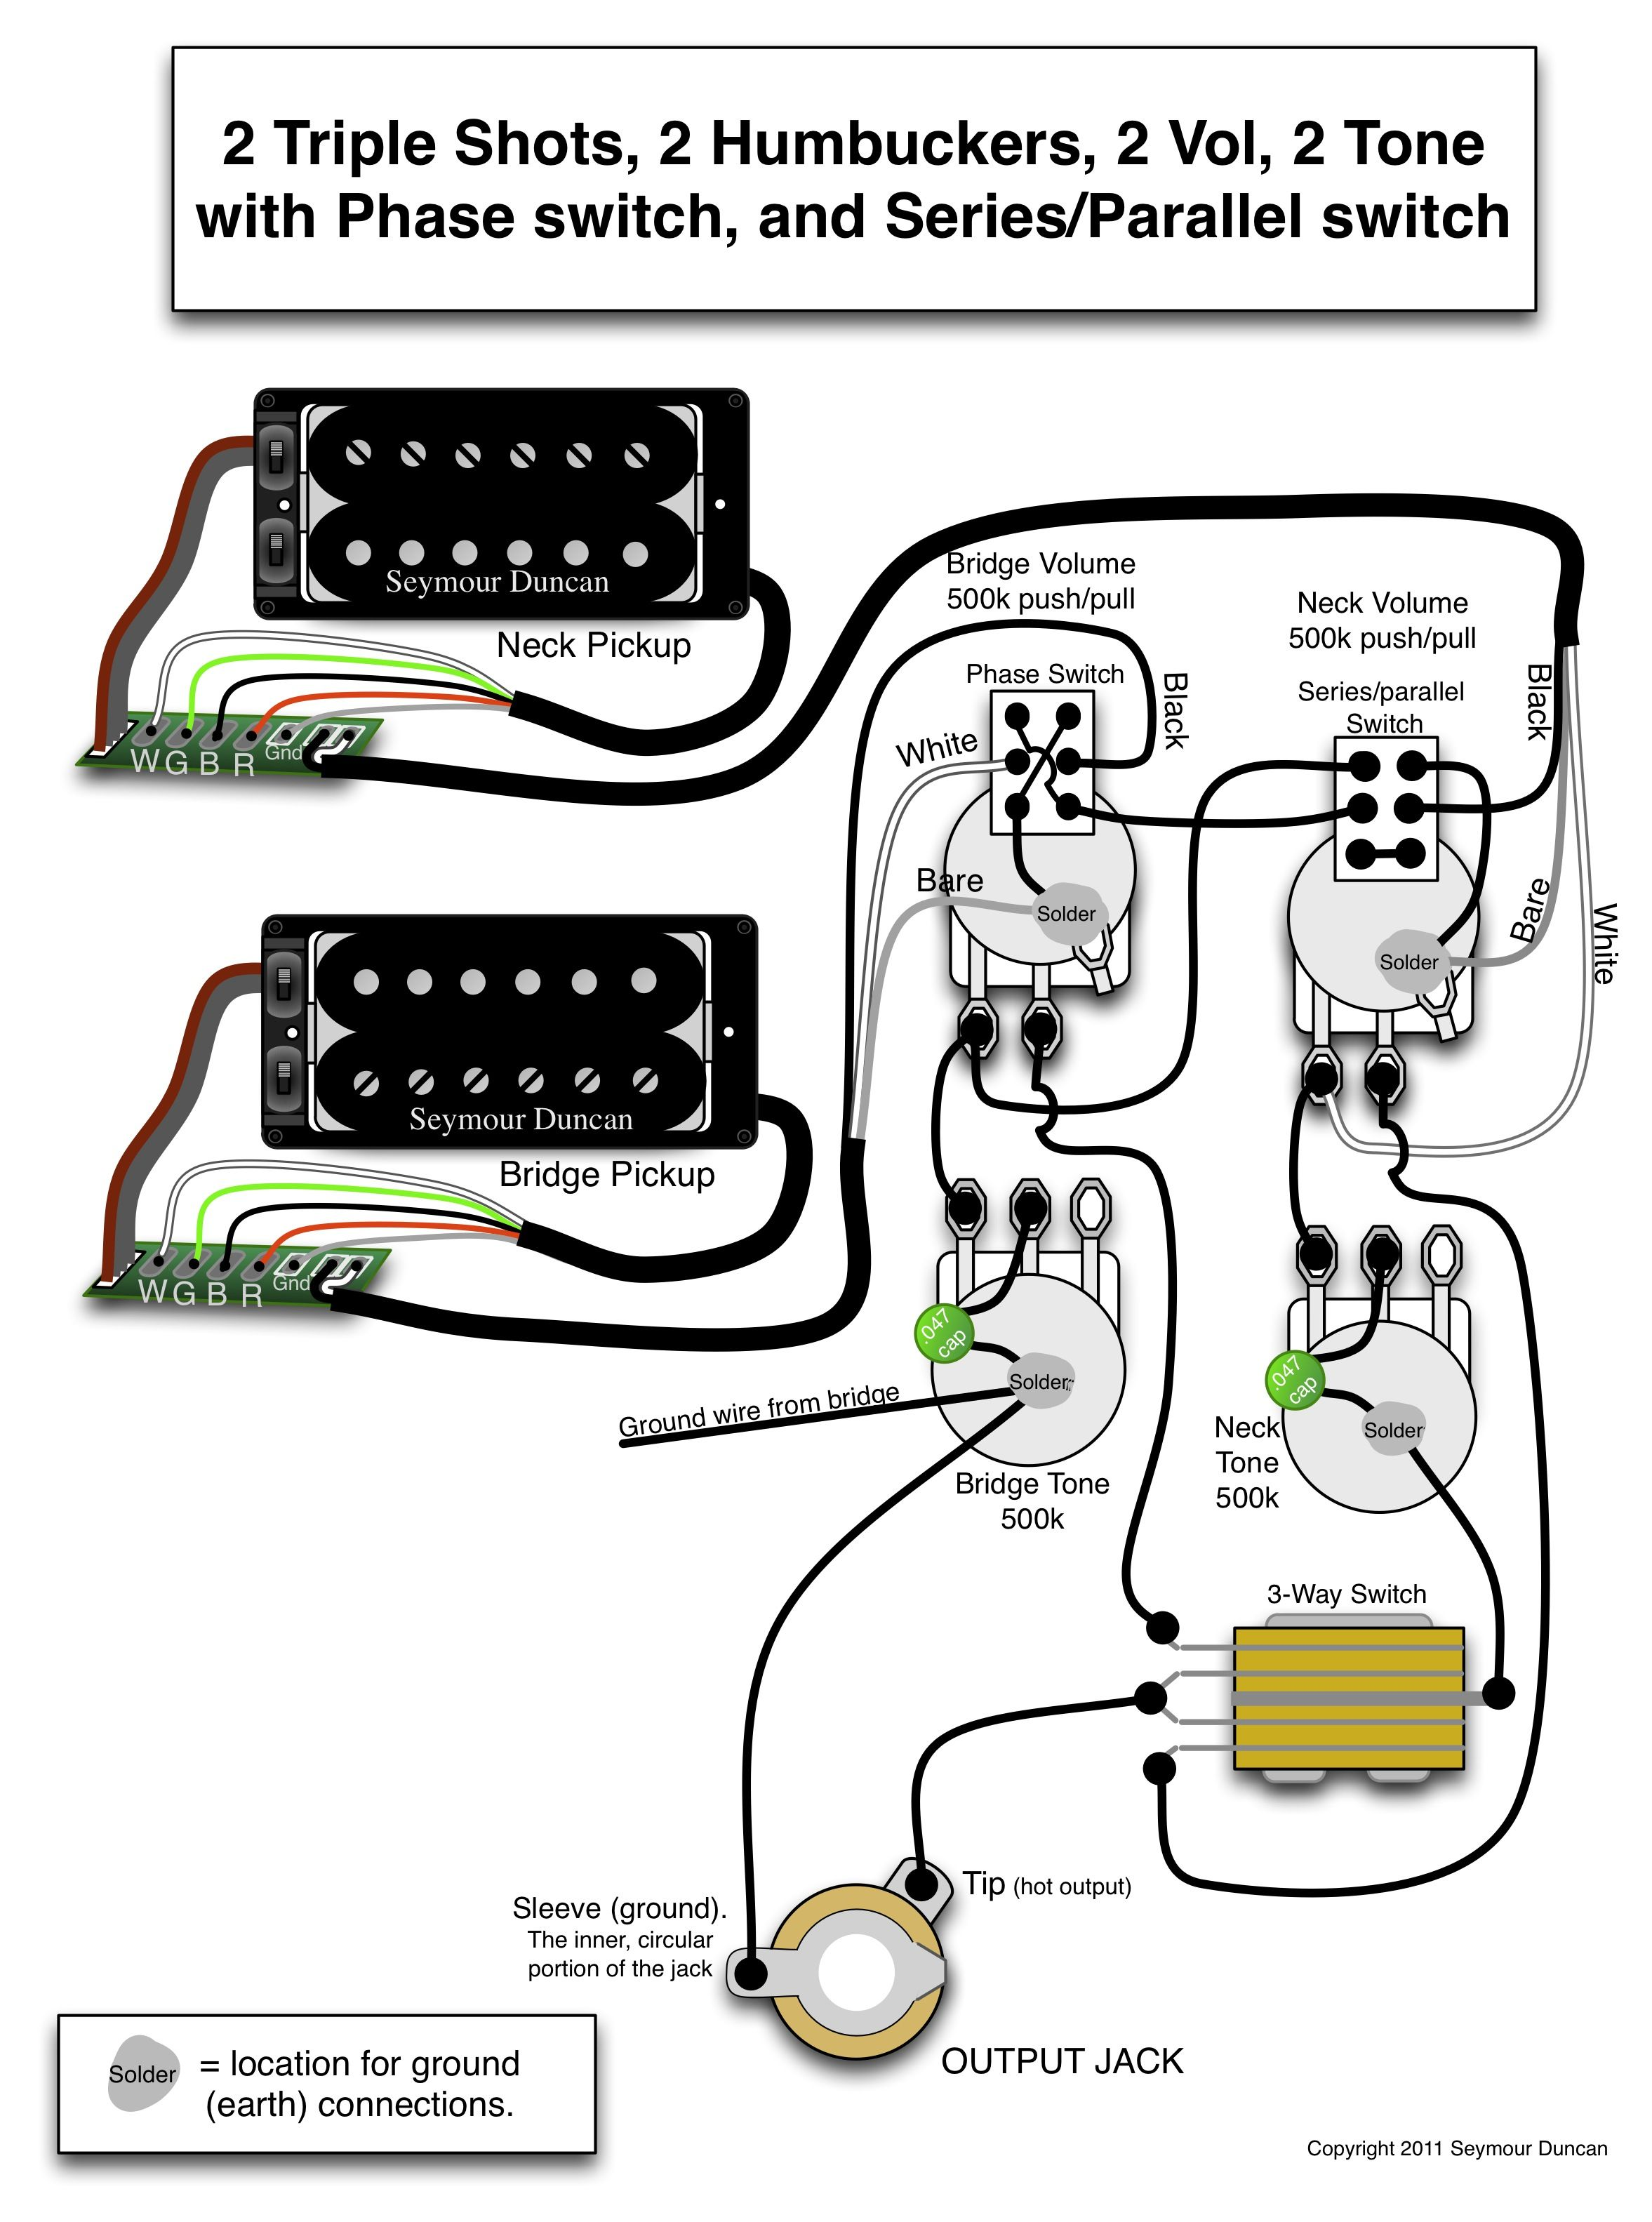 medium resolution of seymour duncan wiring diagram 2 triple shots 2 humbuckers 2 vol 2 tone one with phase switch and the other with series parallel switch